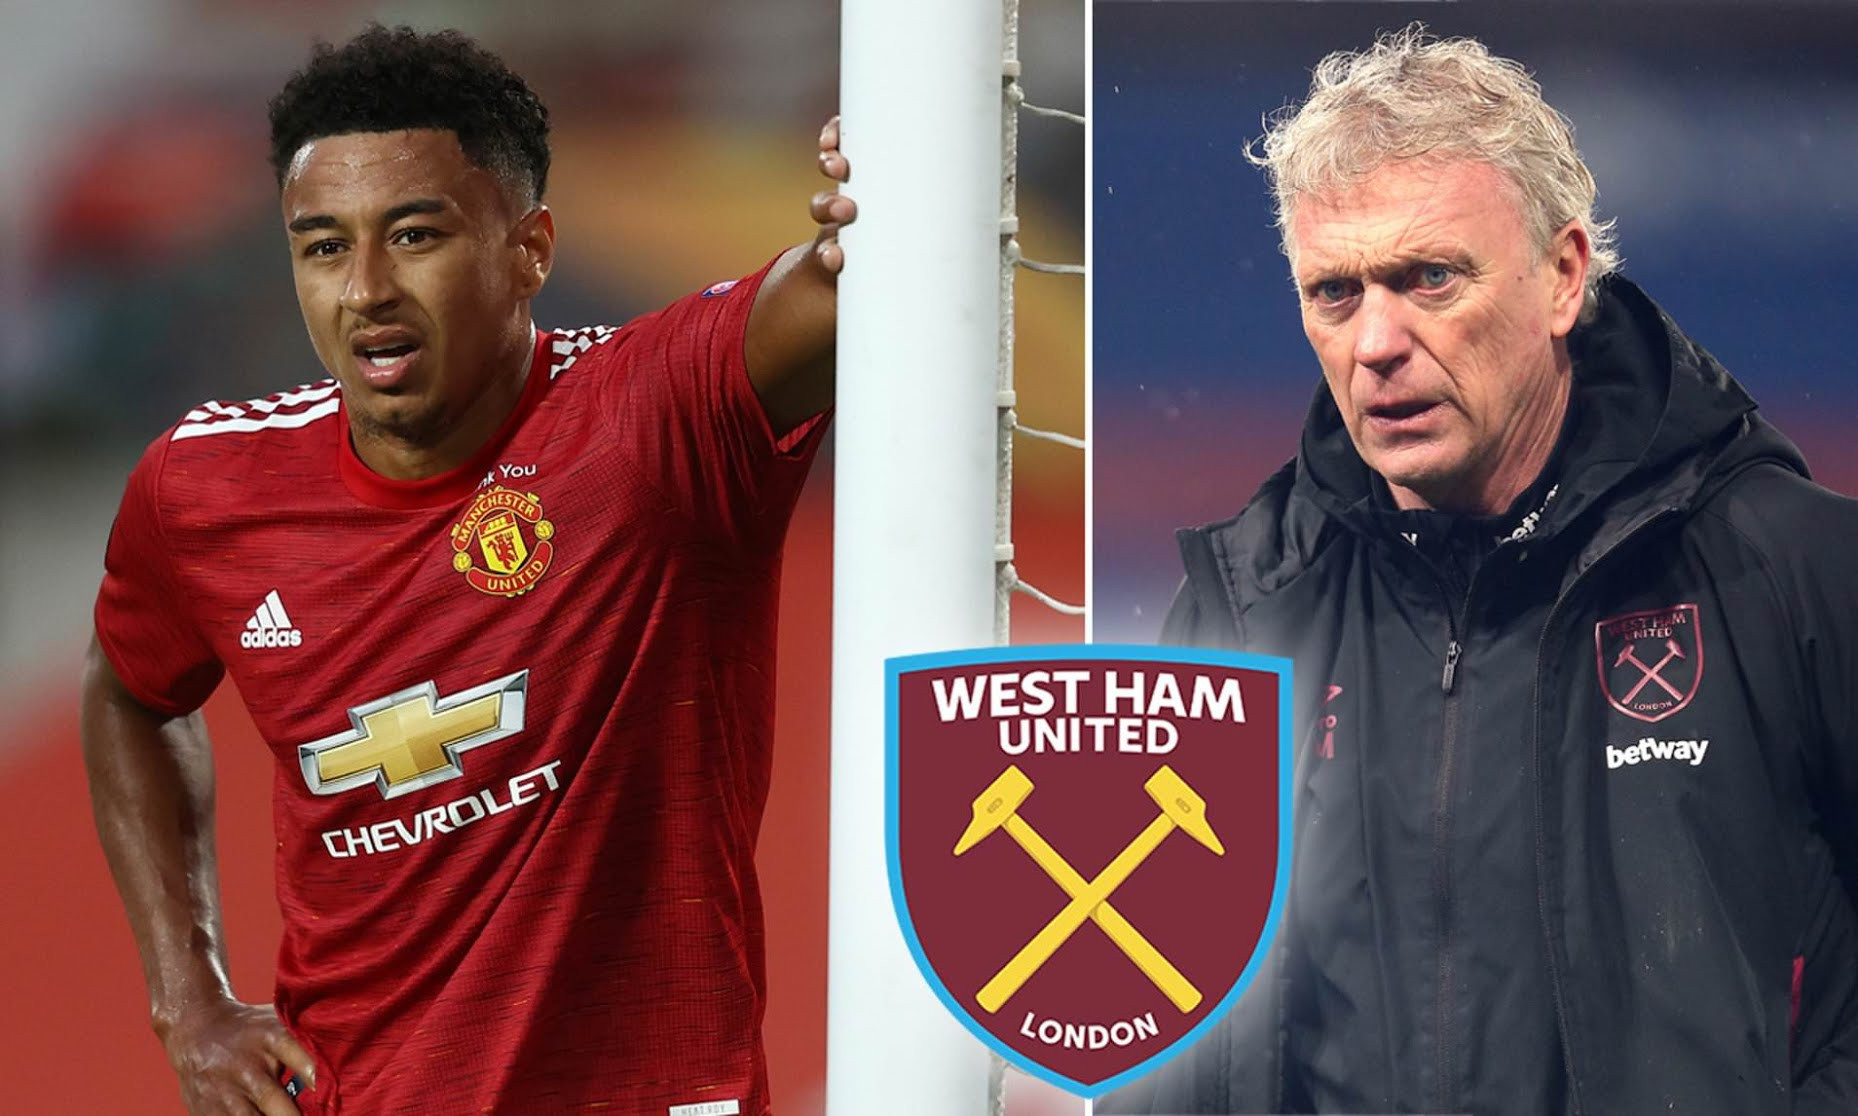 MANCHESTER UNITED PLAYER JESSE LINGARD AGREES LOAN DEAL WITH WEST HAM TILL END OF SEASON